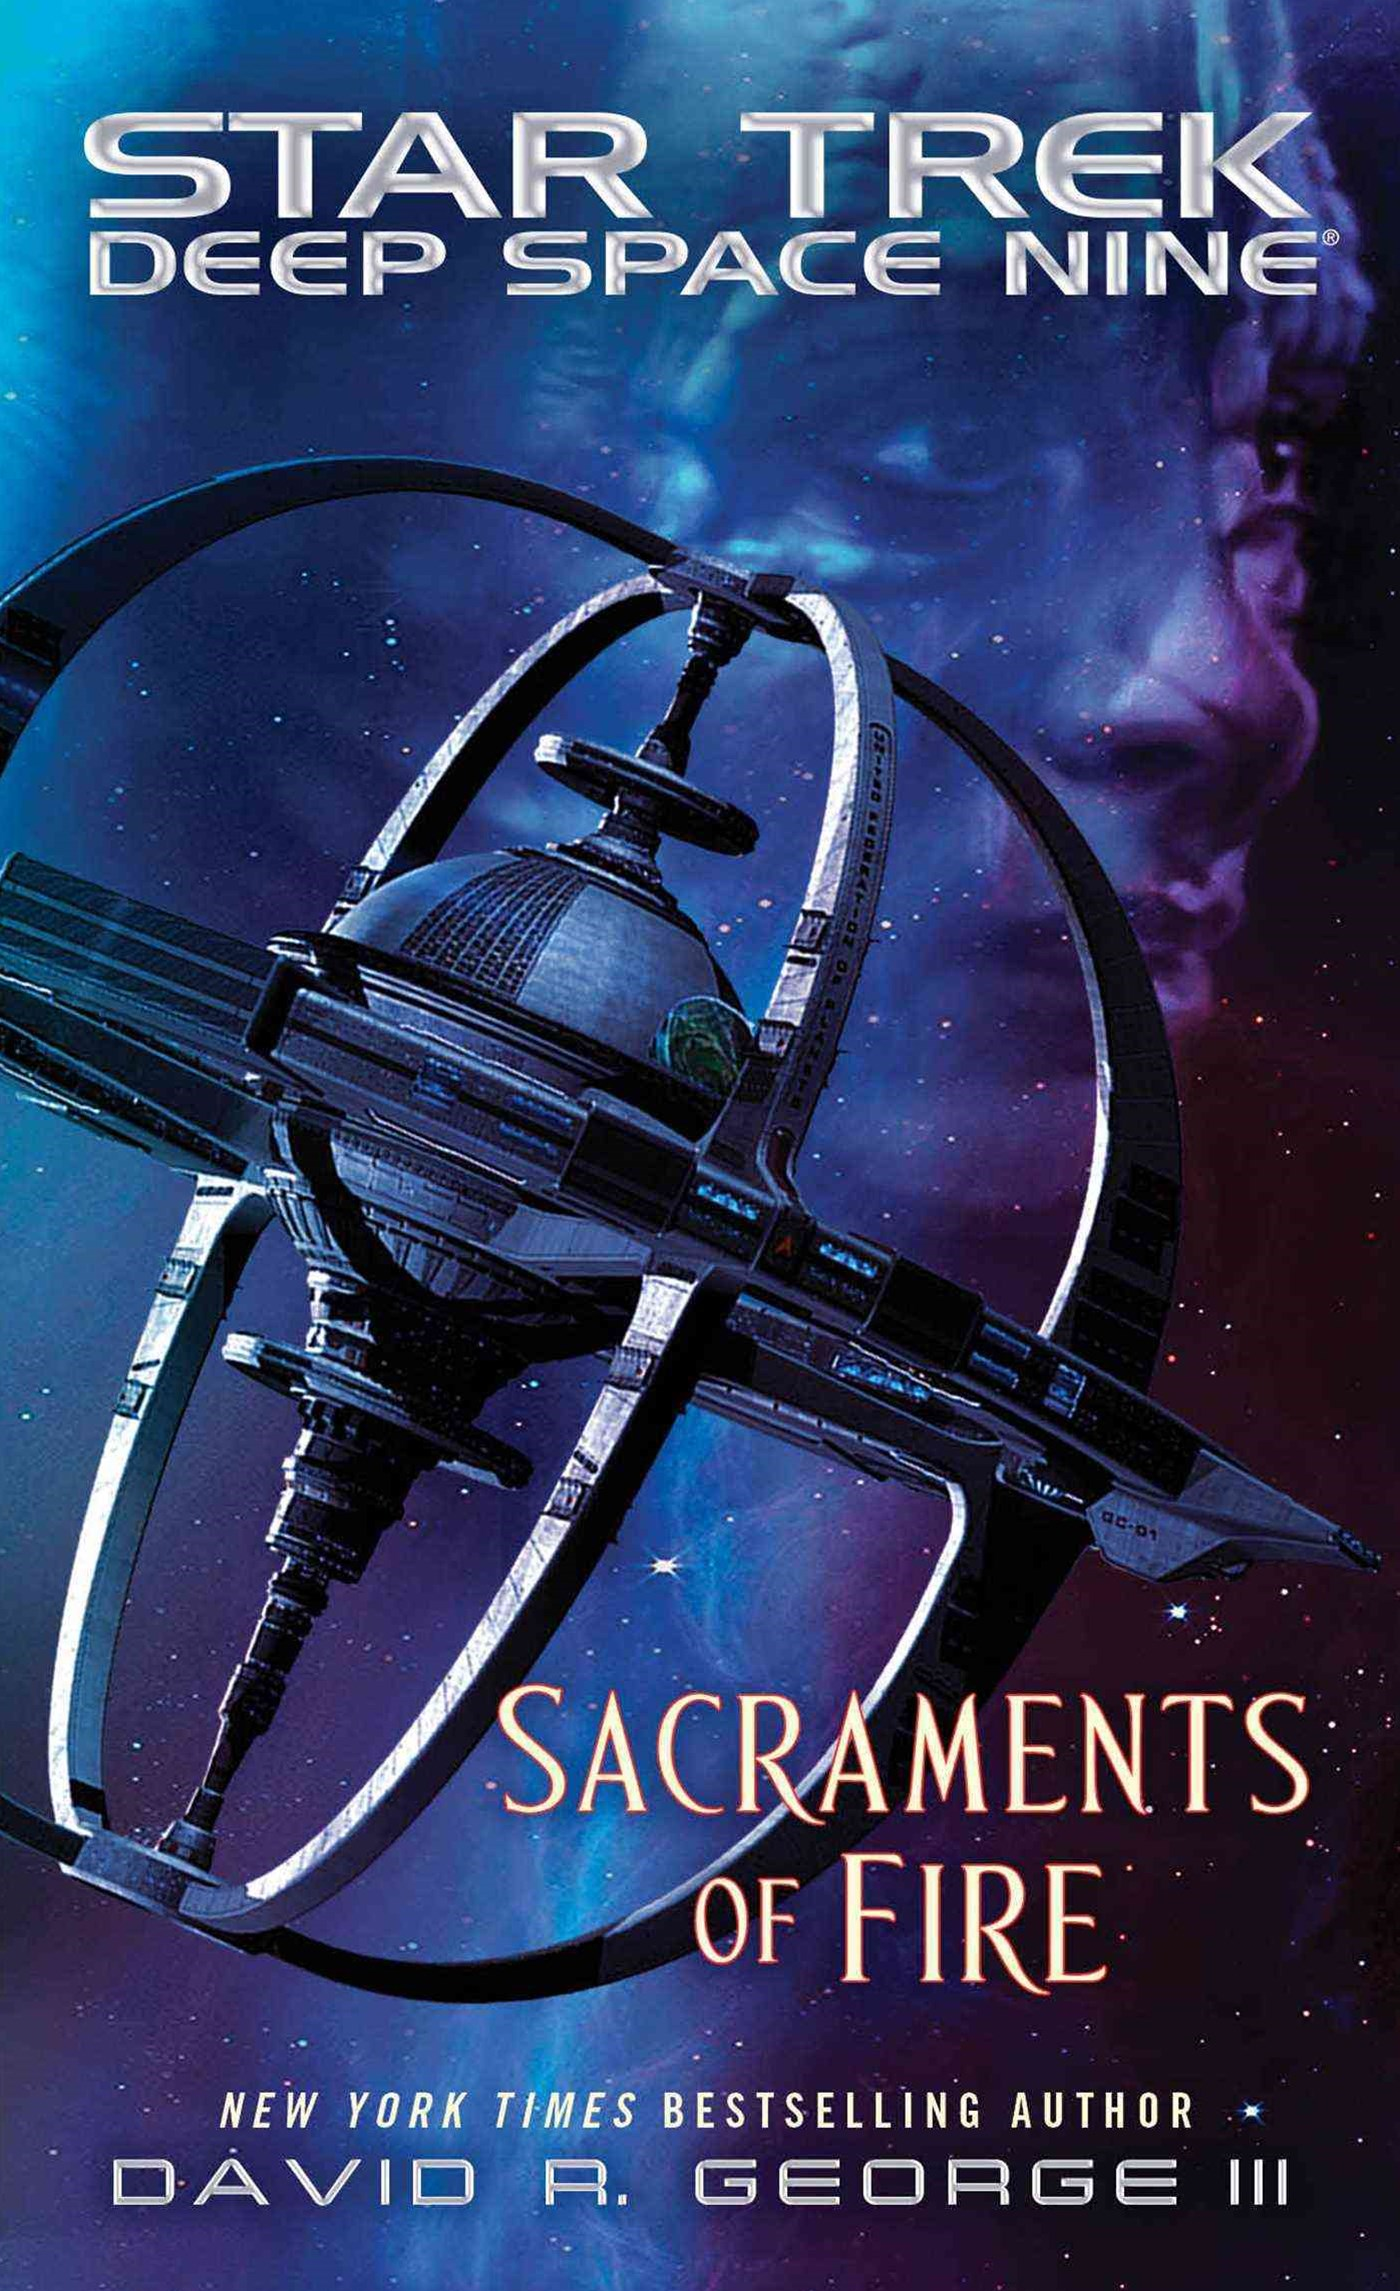 Star Trek: Deep Space Nine: Sacraments of Fire